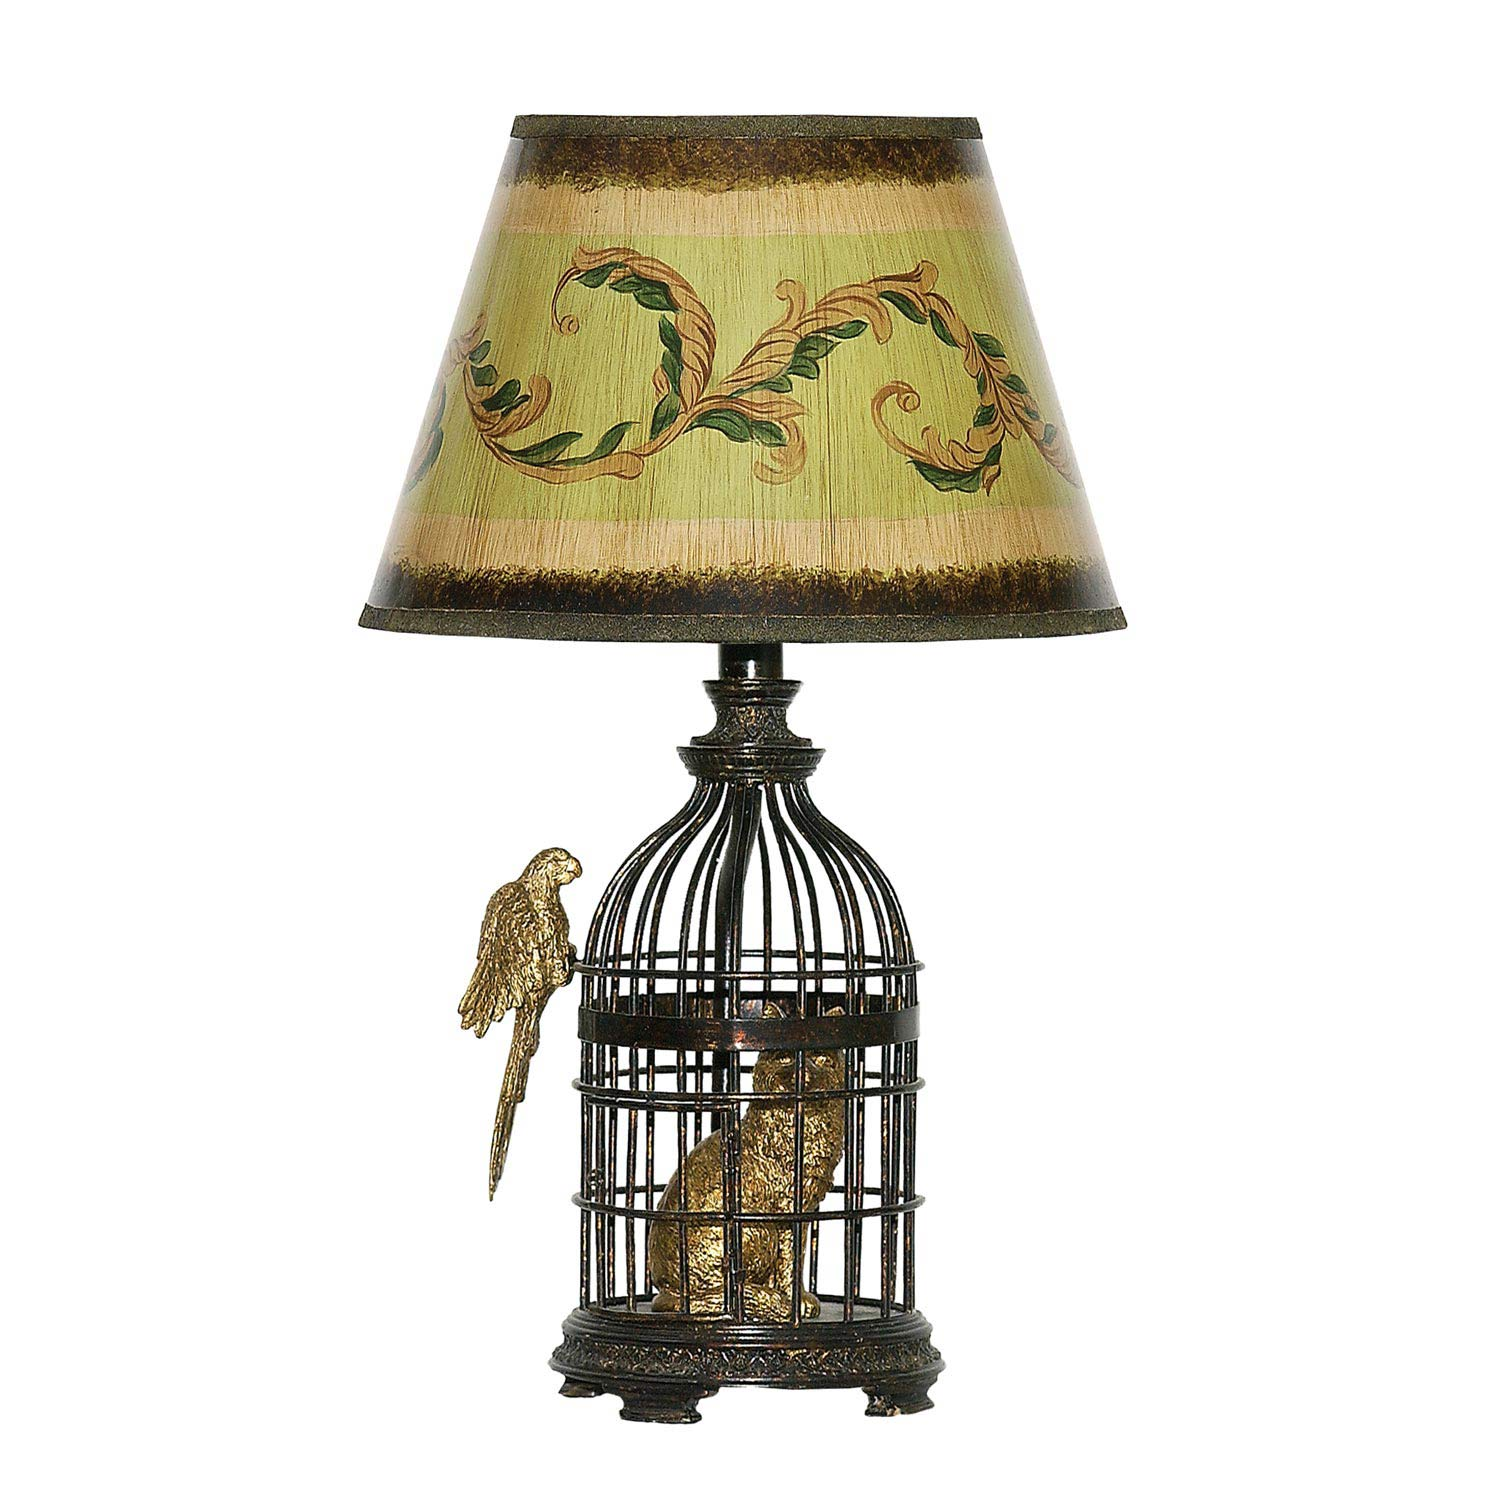 Elk Lighting 91-620 Trading Places Table Lamp Table Lamp - Bronze